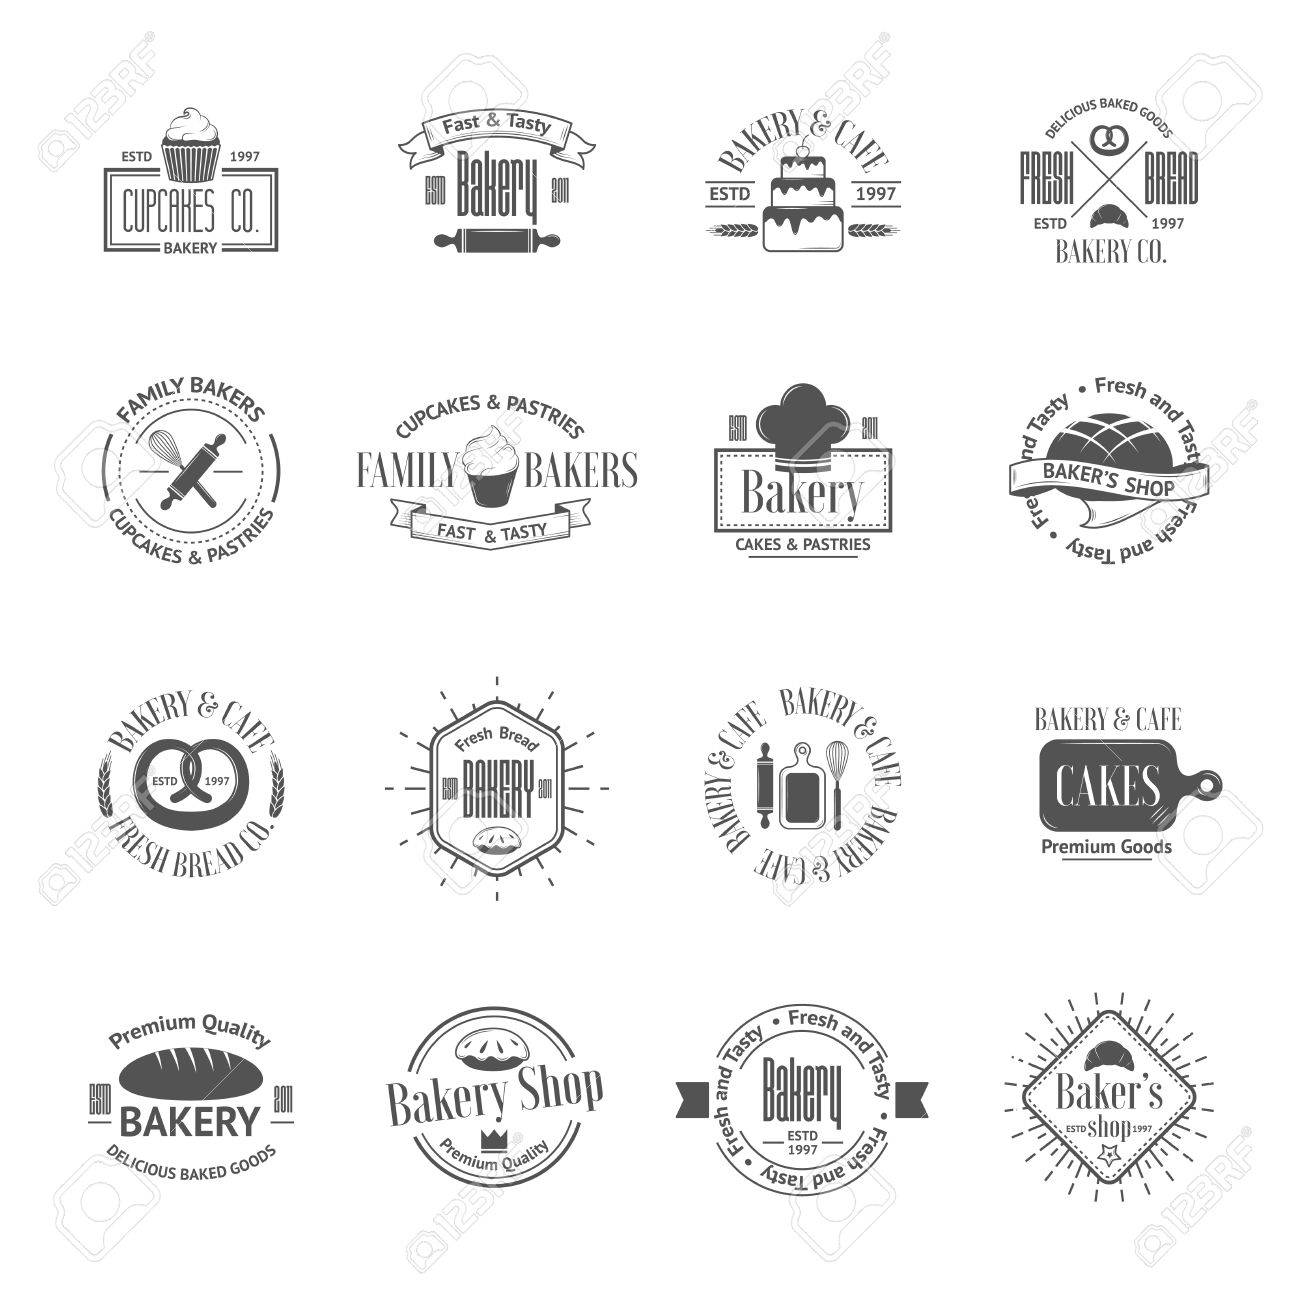 Vintage bakery badges, labels and logos - 37732362